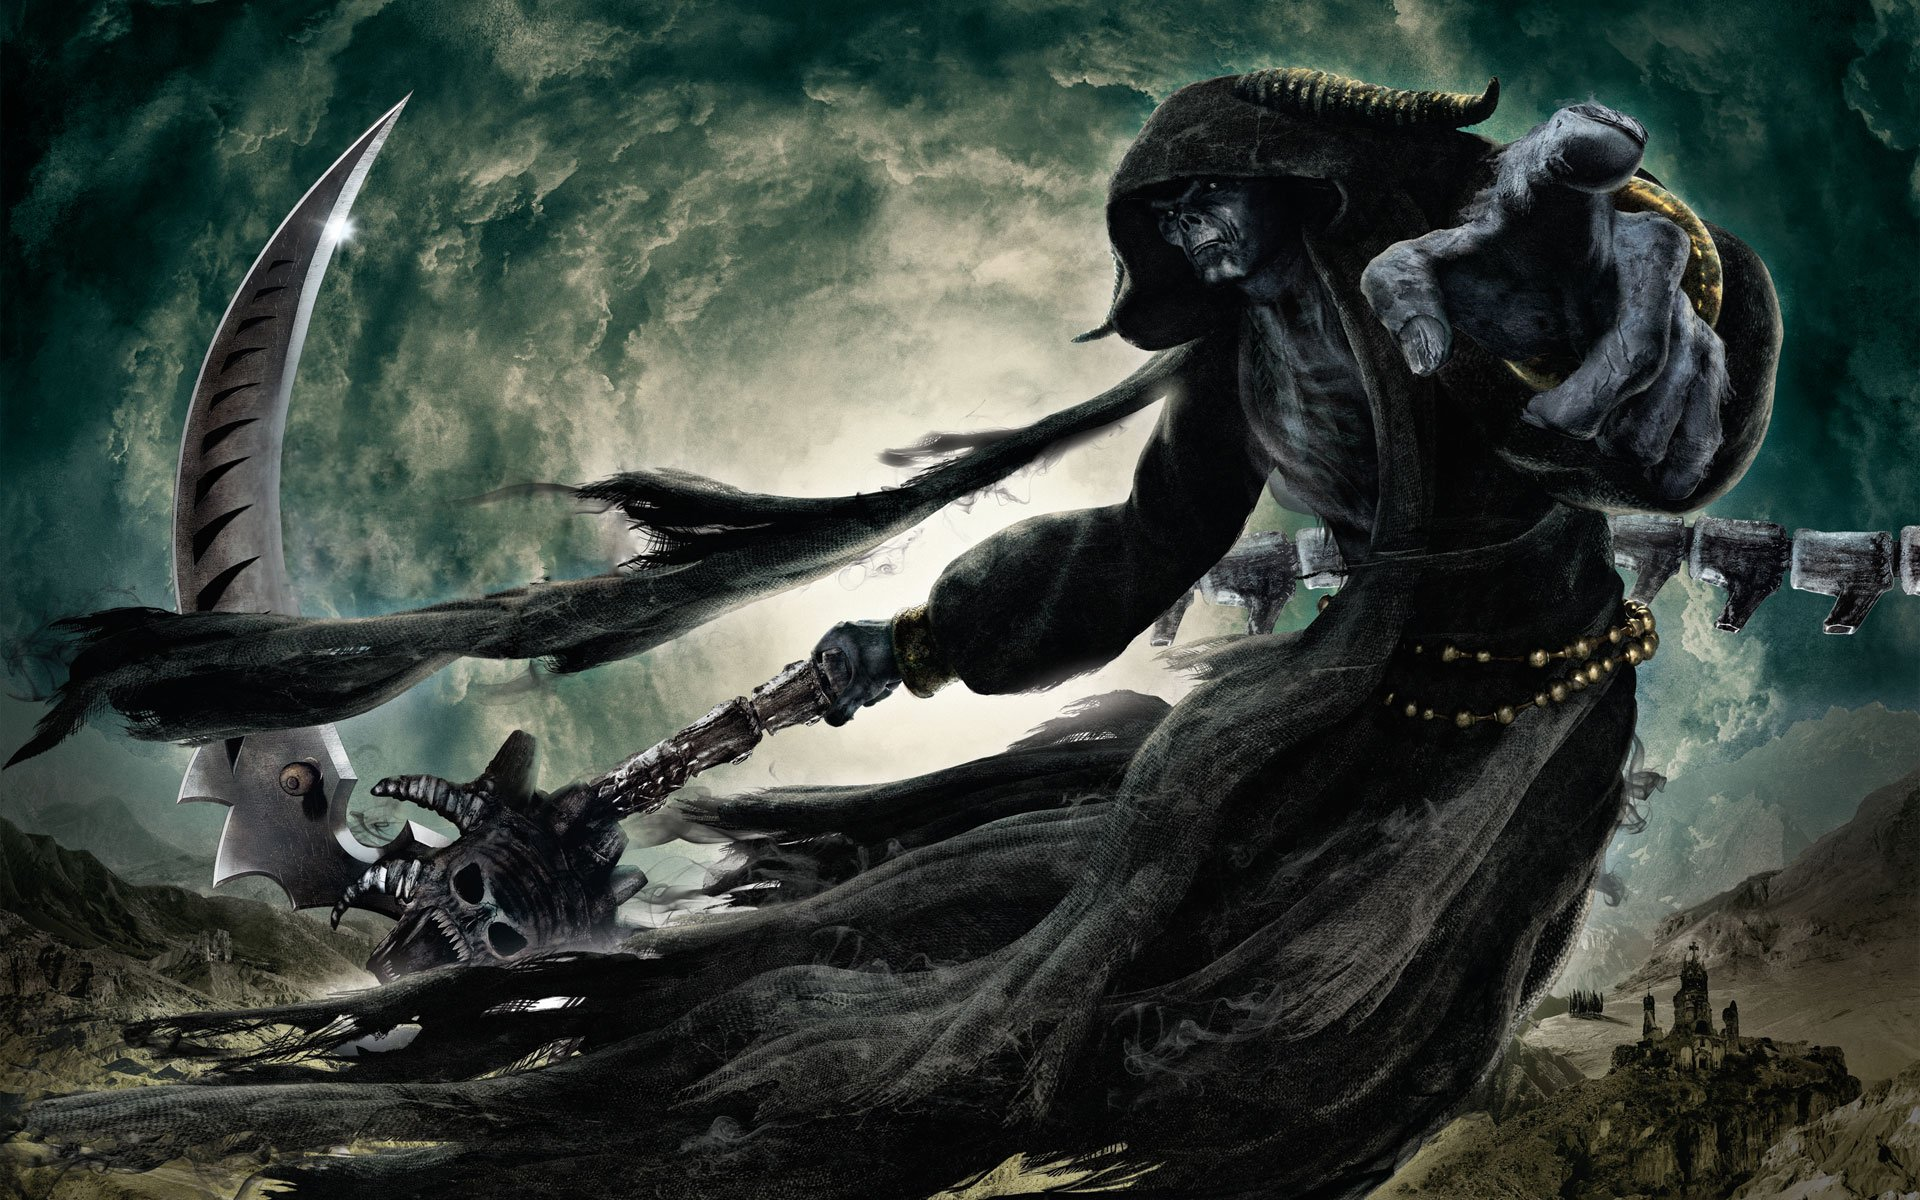 Download Grim Reaper Wallpapers Pictures Photos and Backgrounds 1920x1200